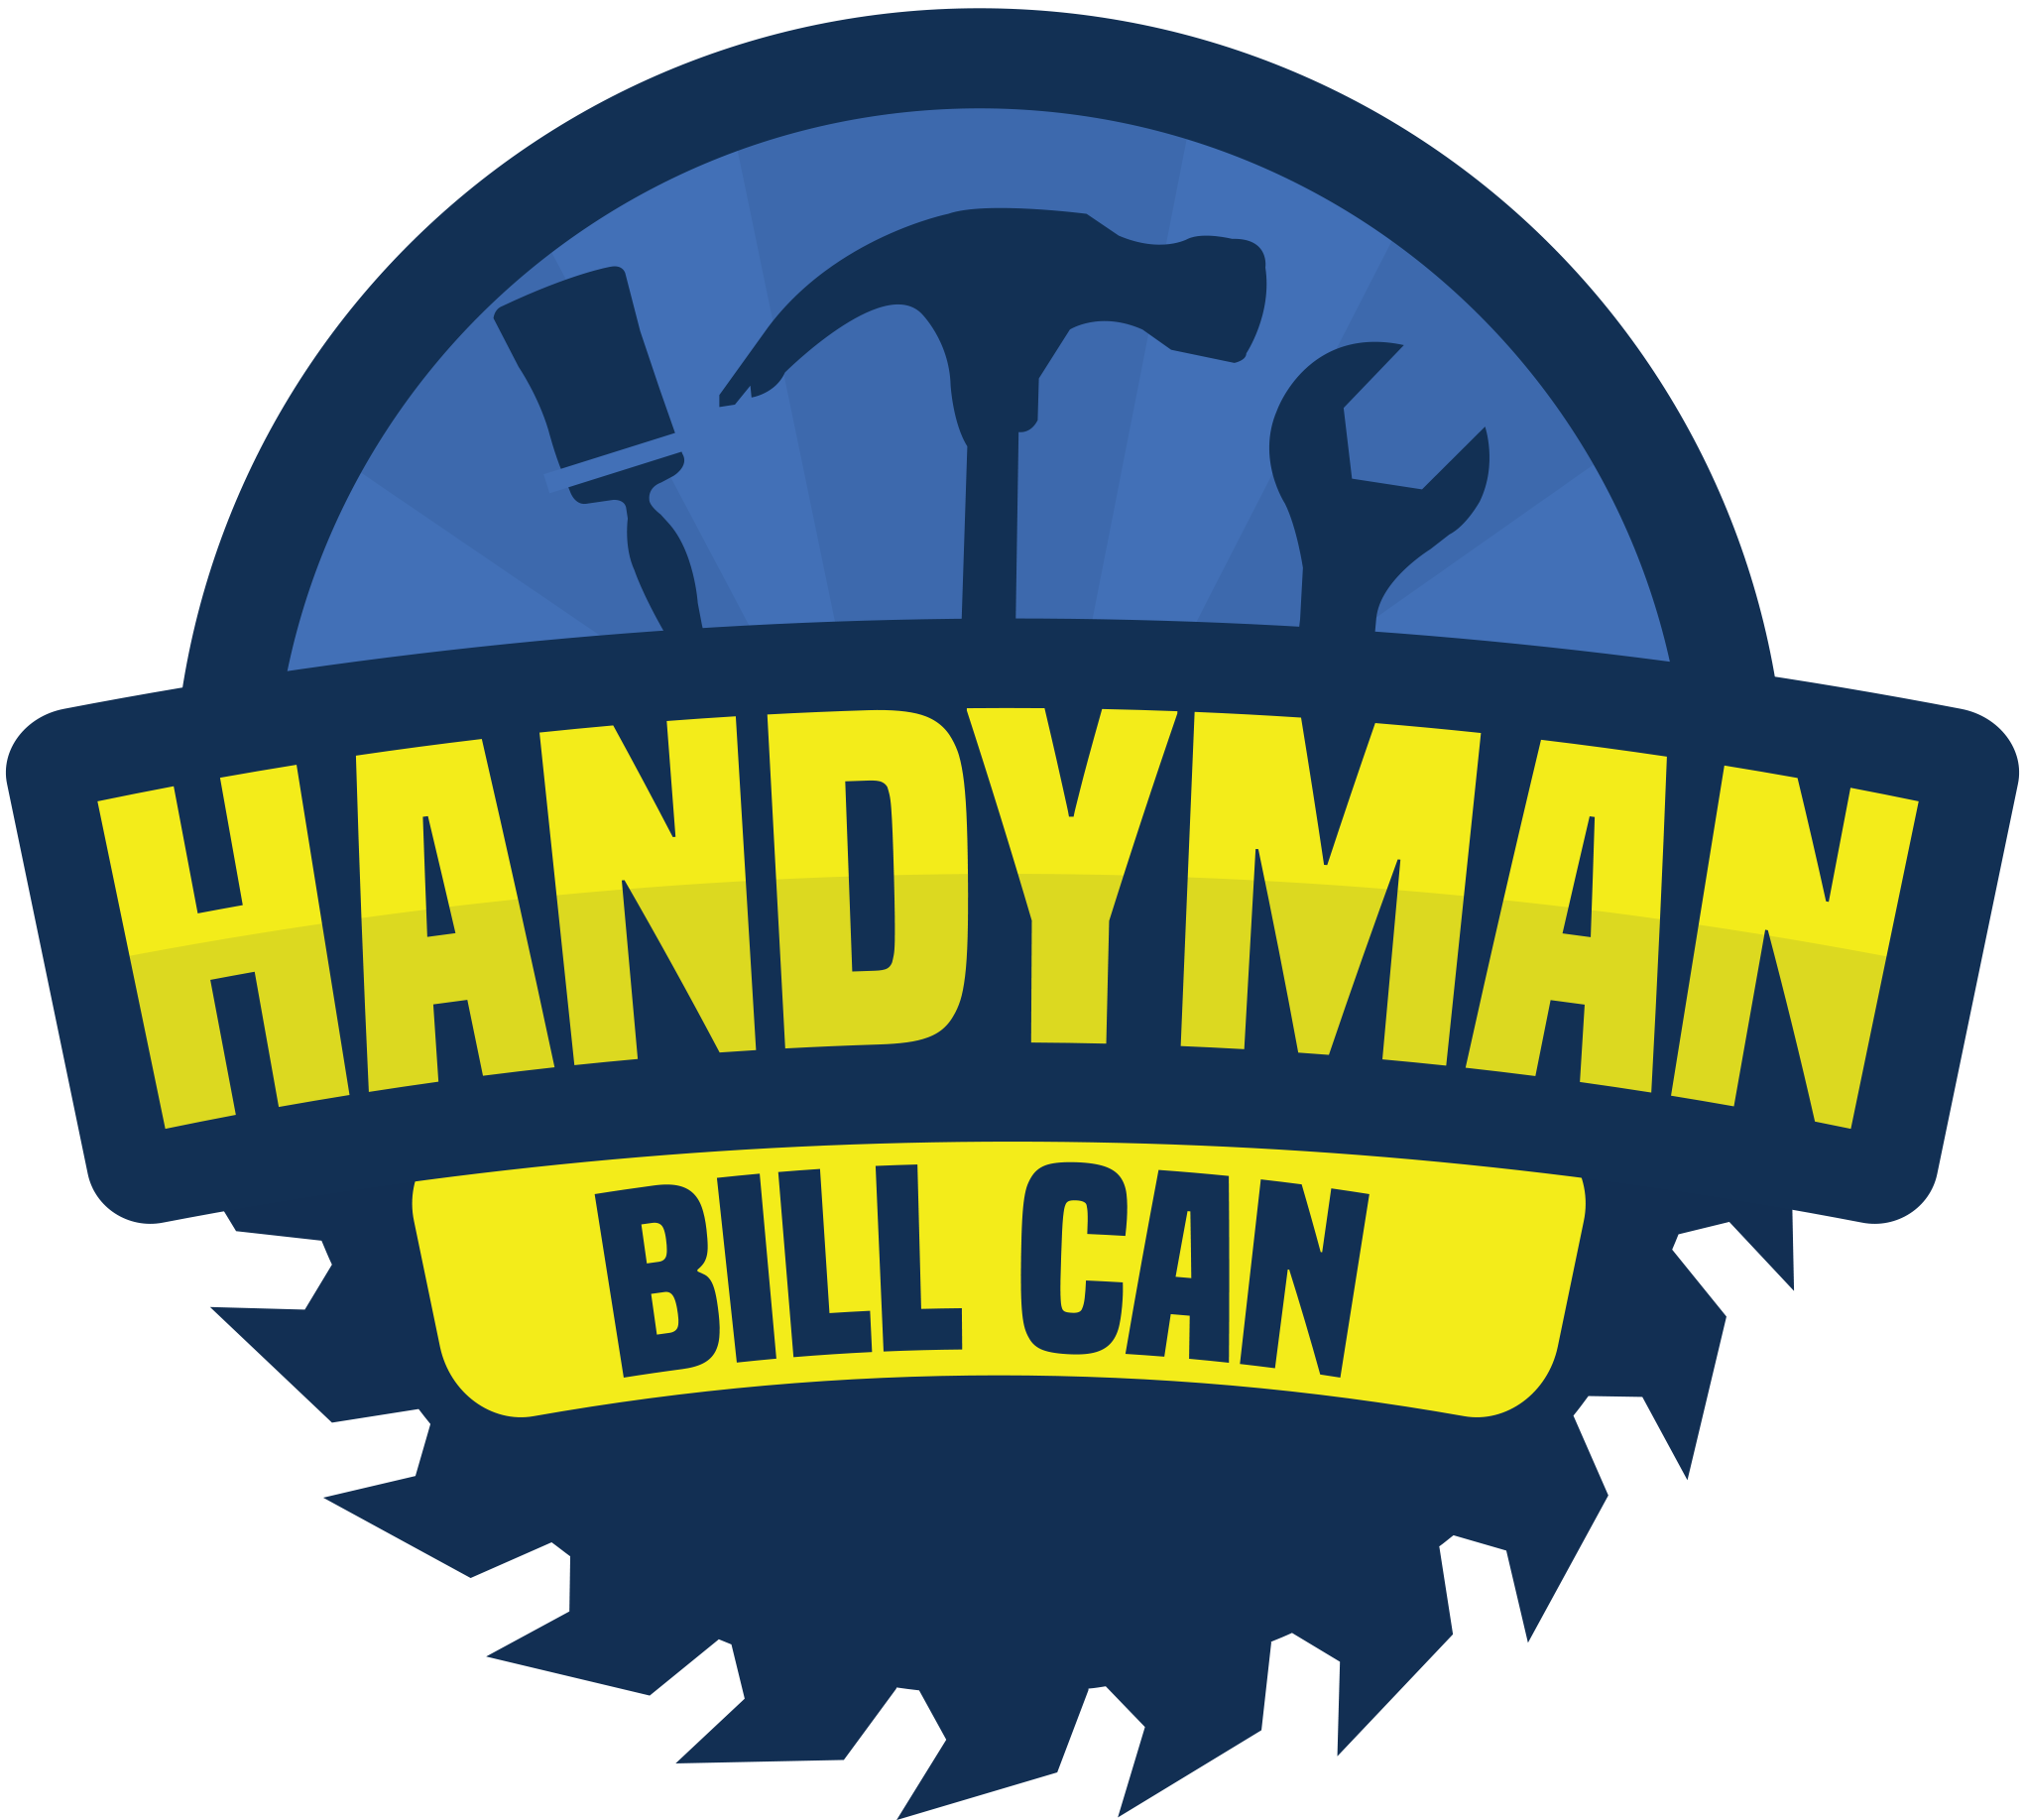 Handyman clipart hardware store. Home bill can